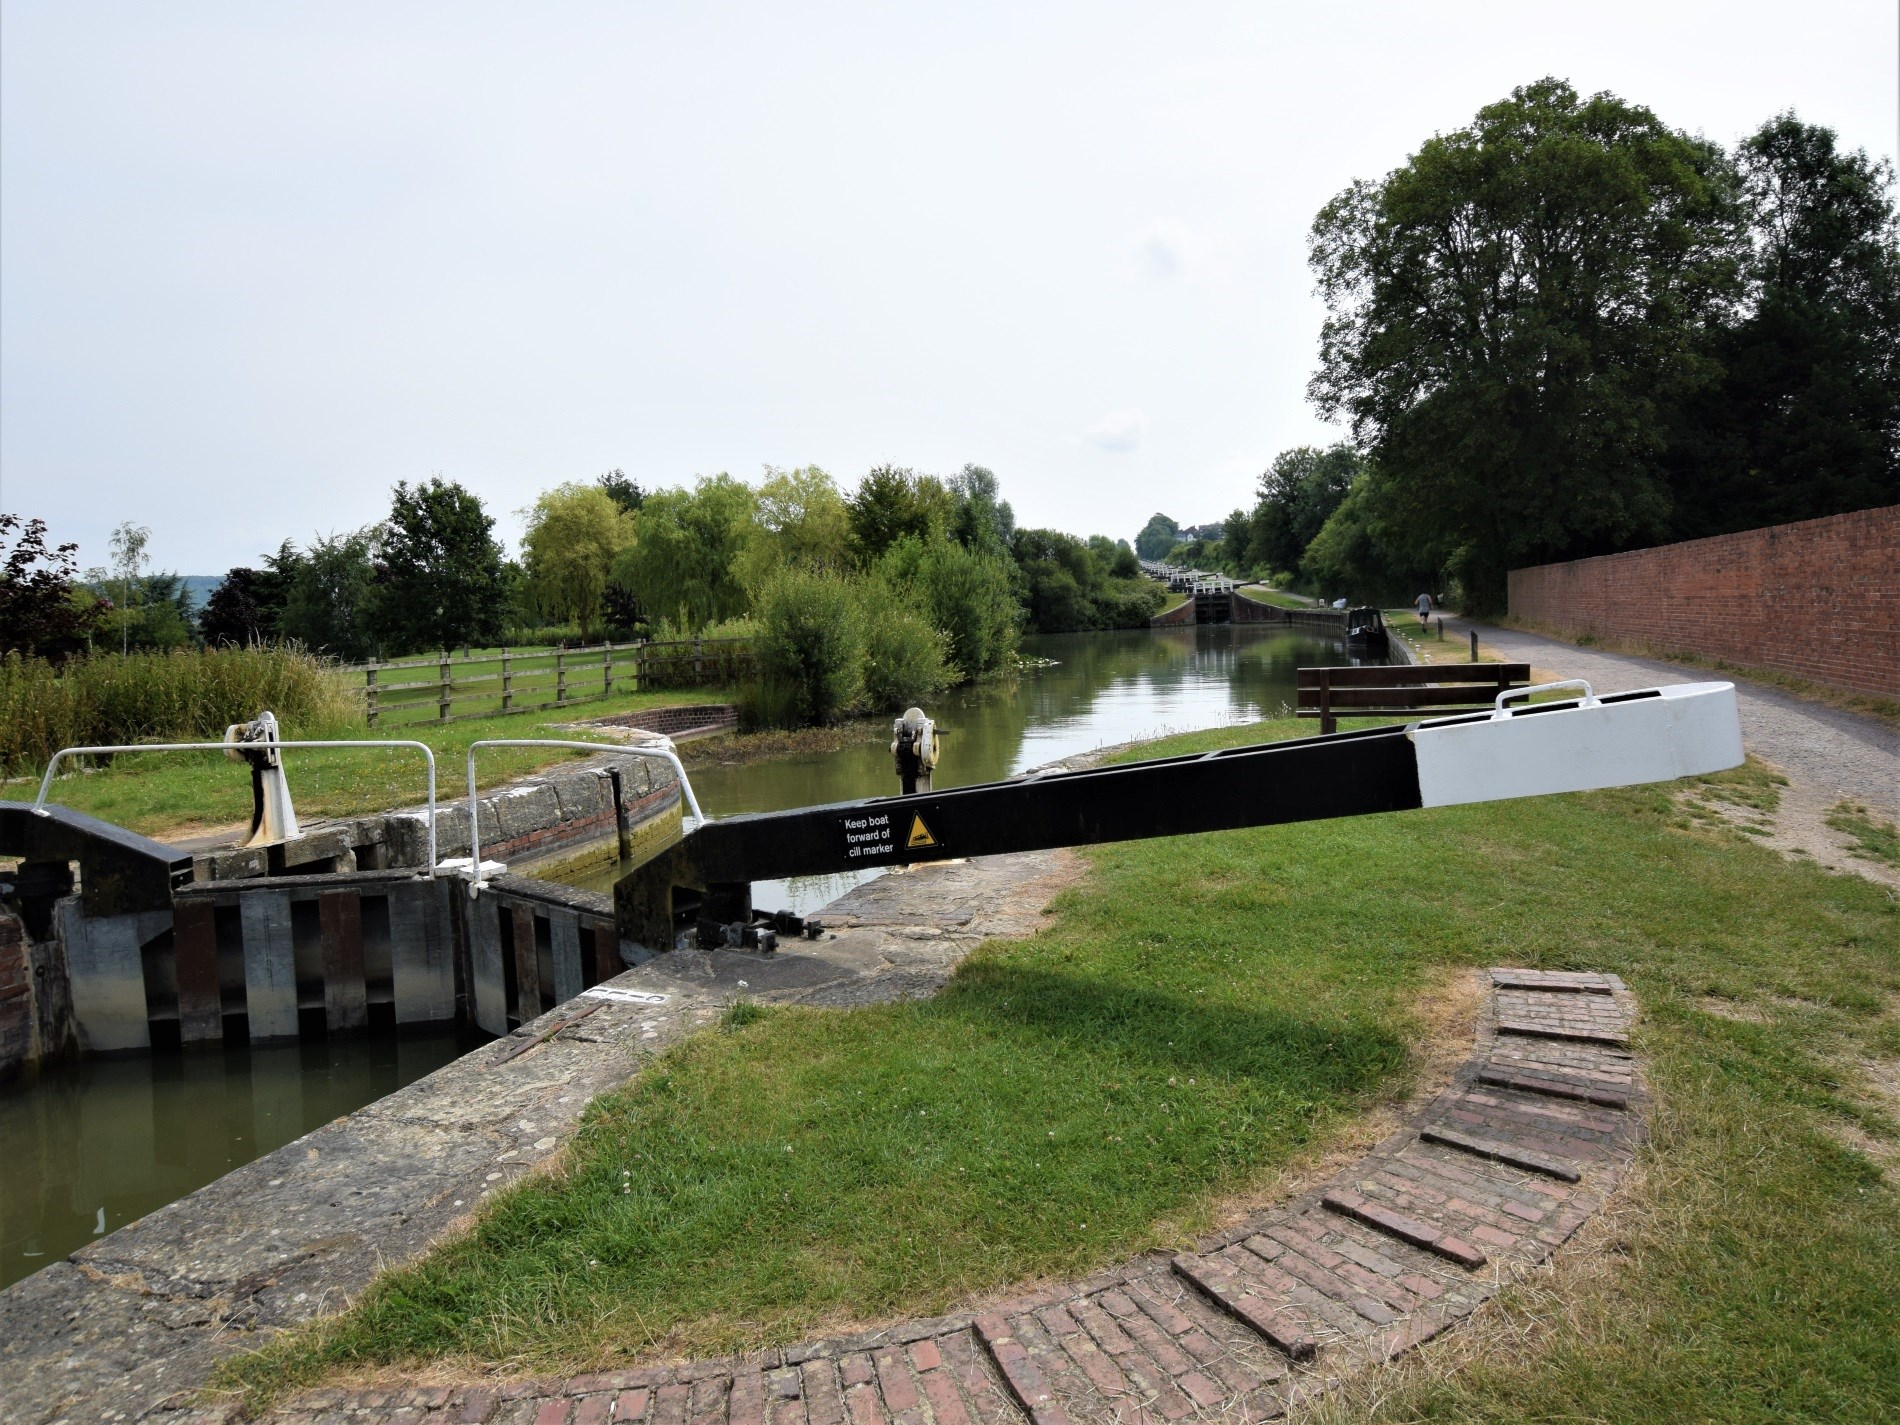 Close to the famous Caen Hill flight of locks